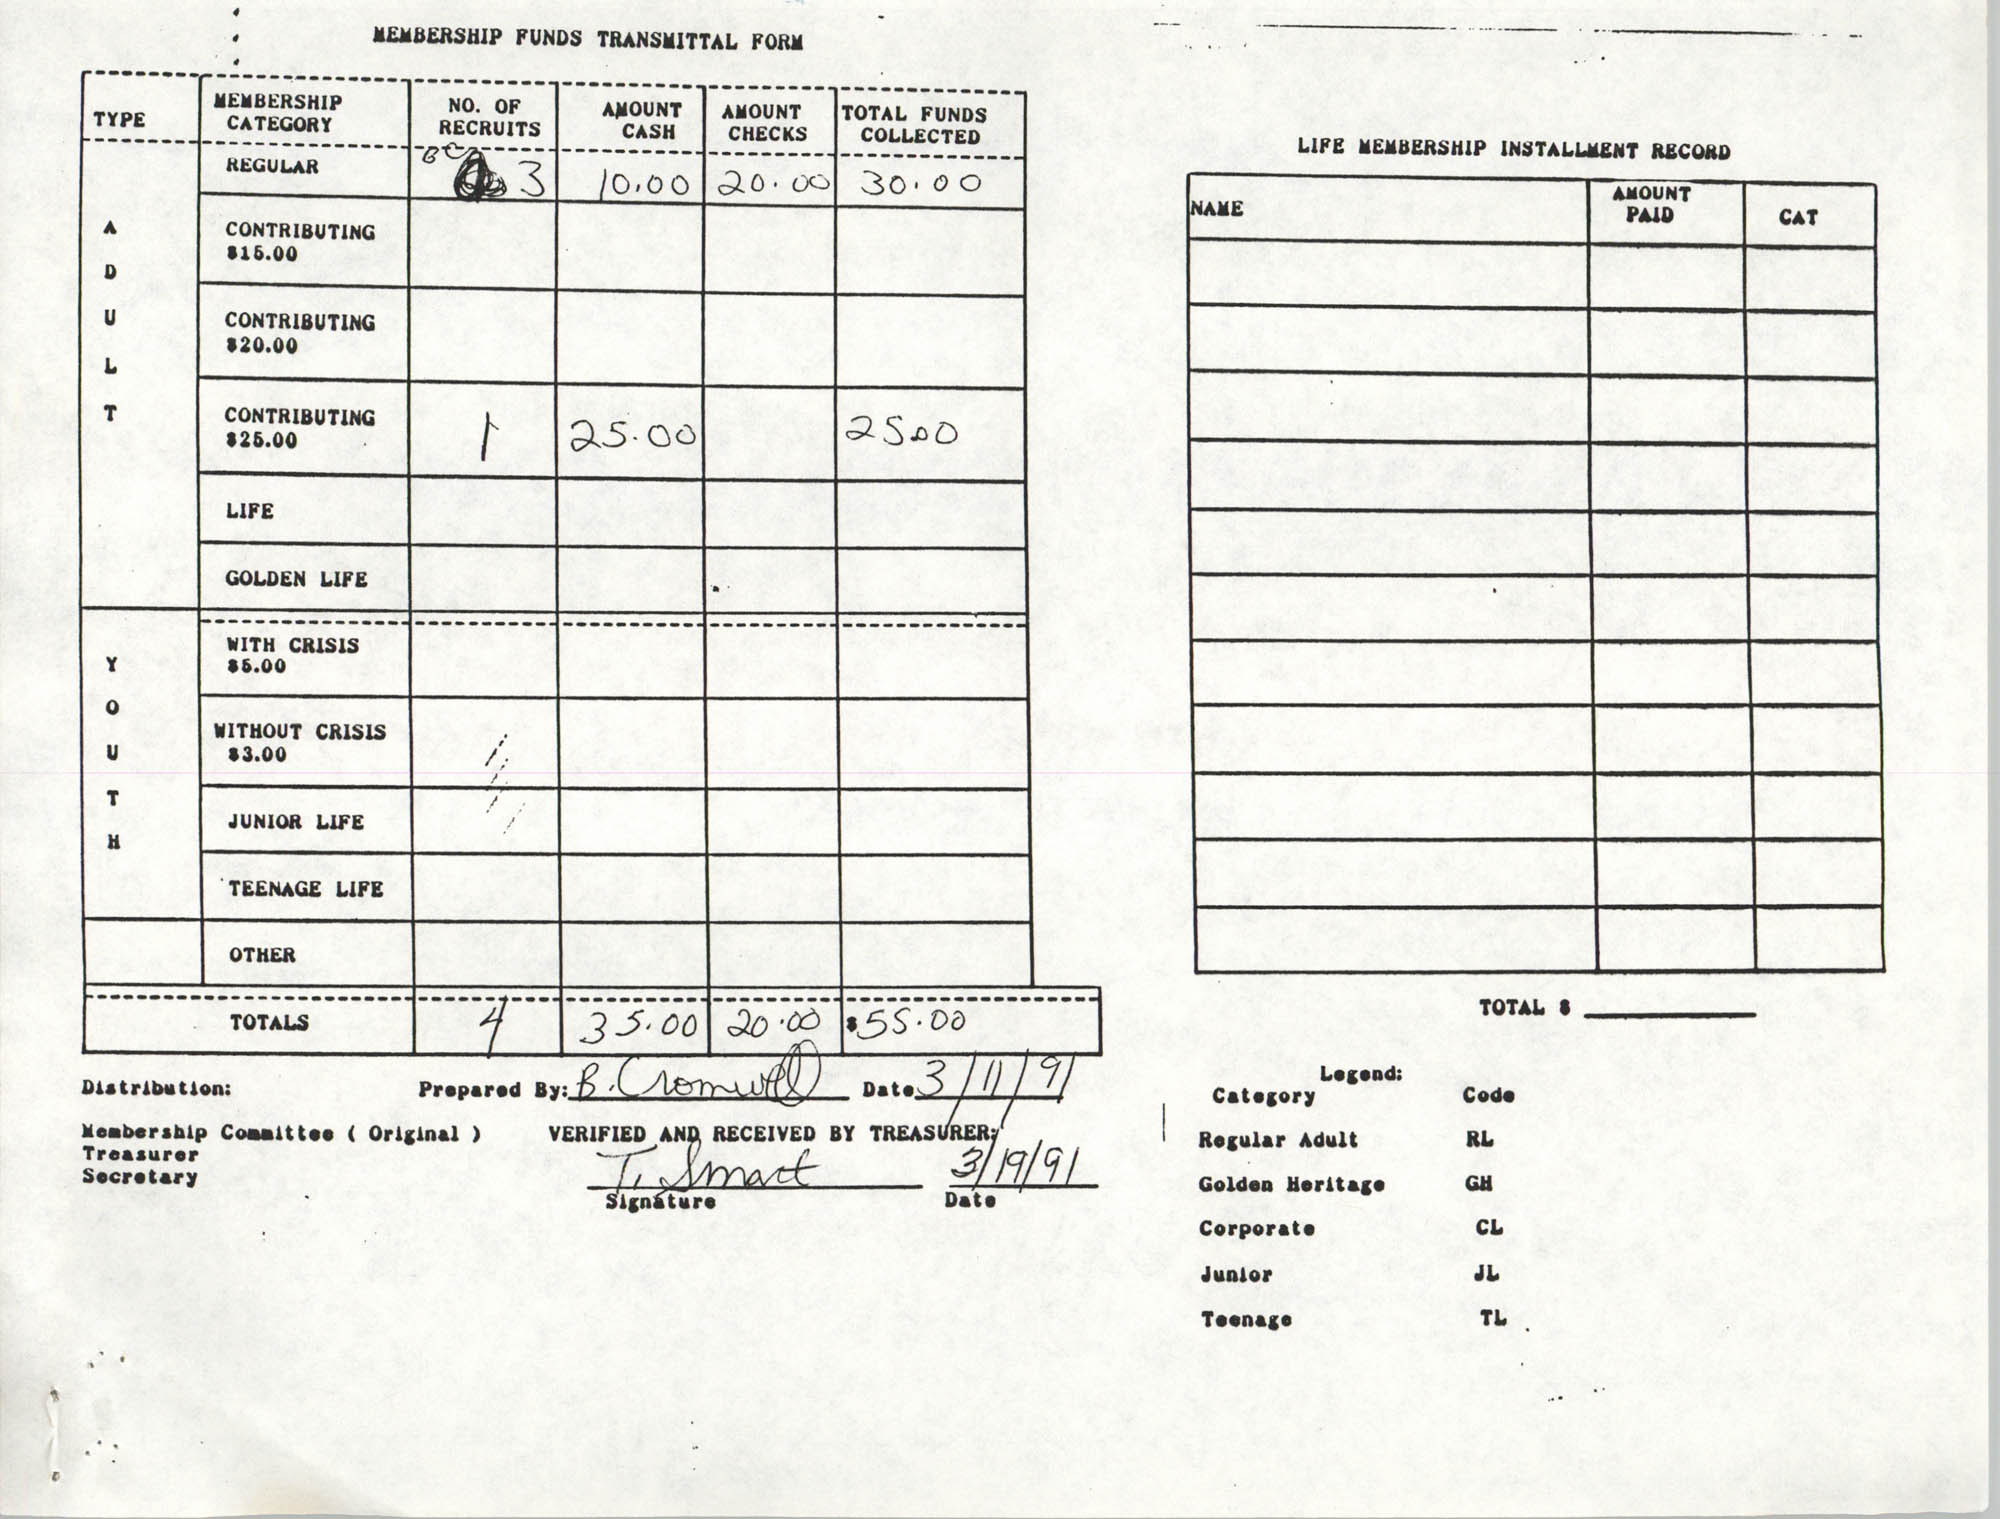 Charleston Branch of the NAACP Funds Transmittal Forms, March 1991, Page 9